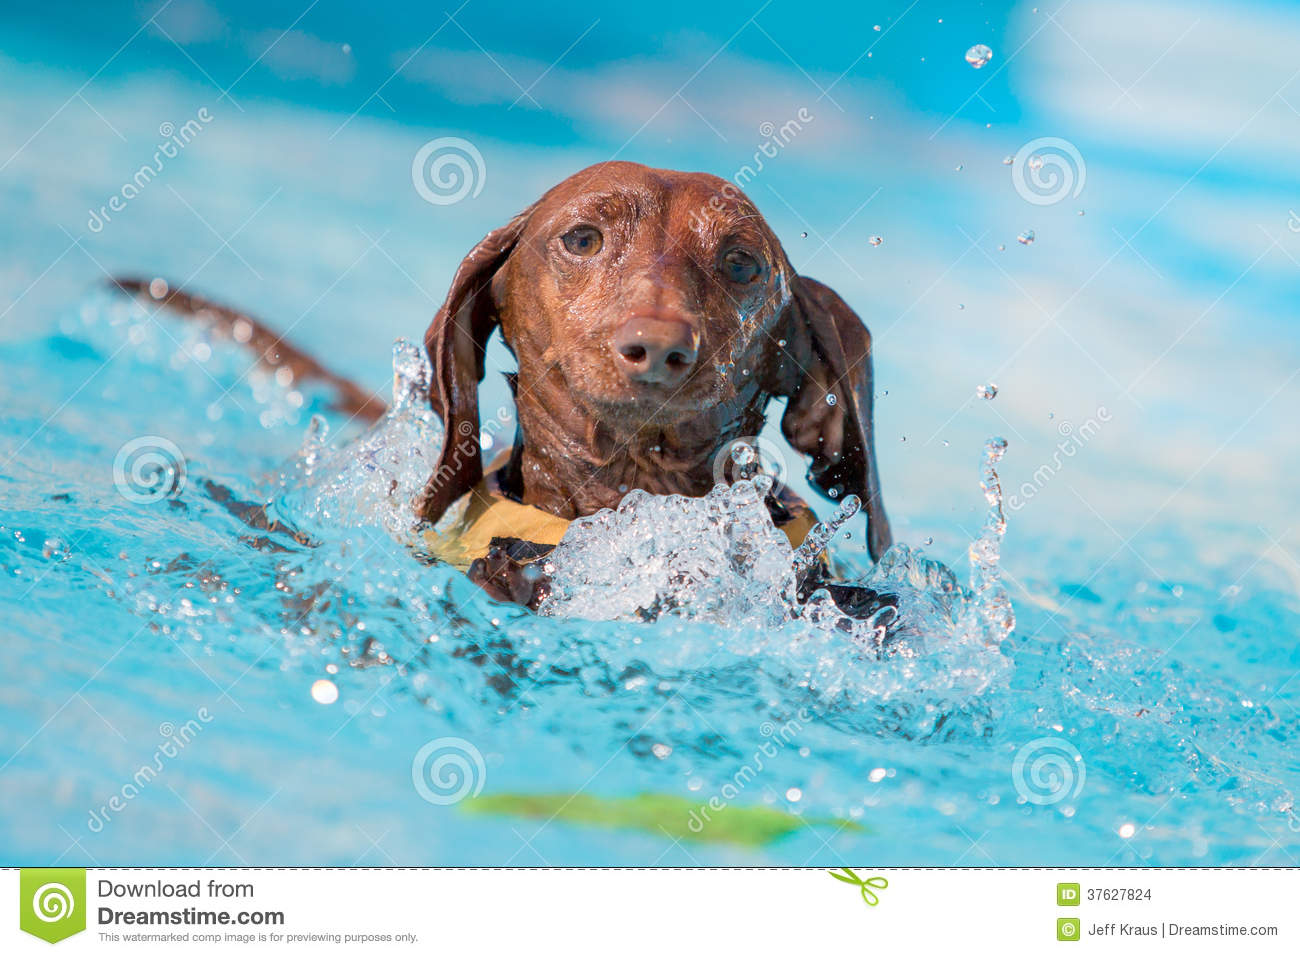 Dachshund Dog Grabbing Toy in the Water